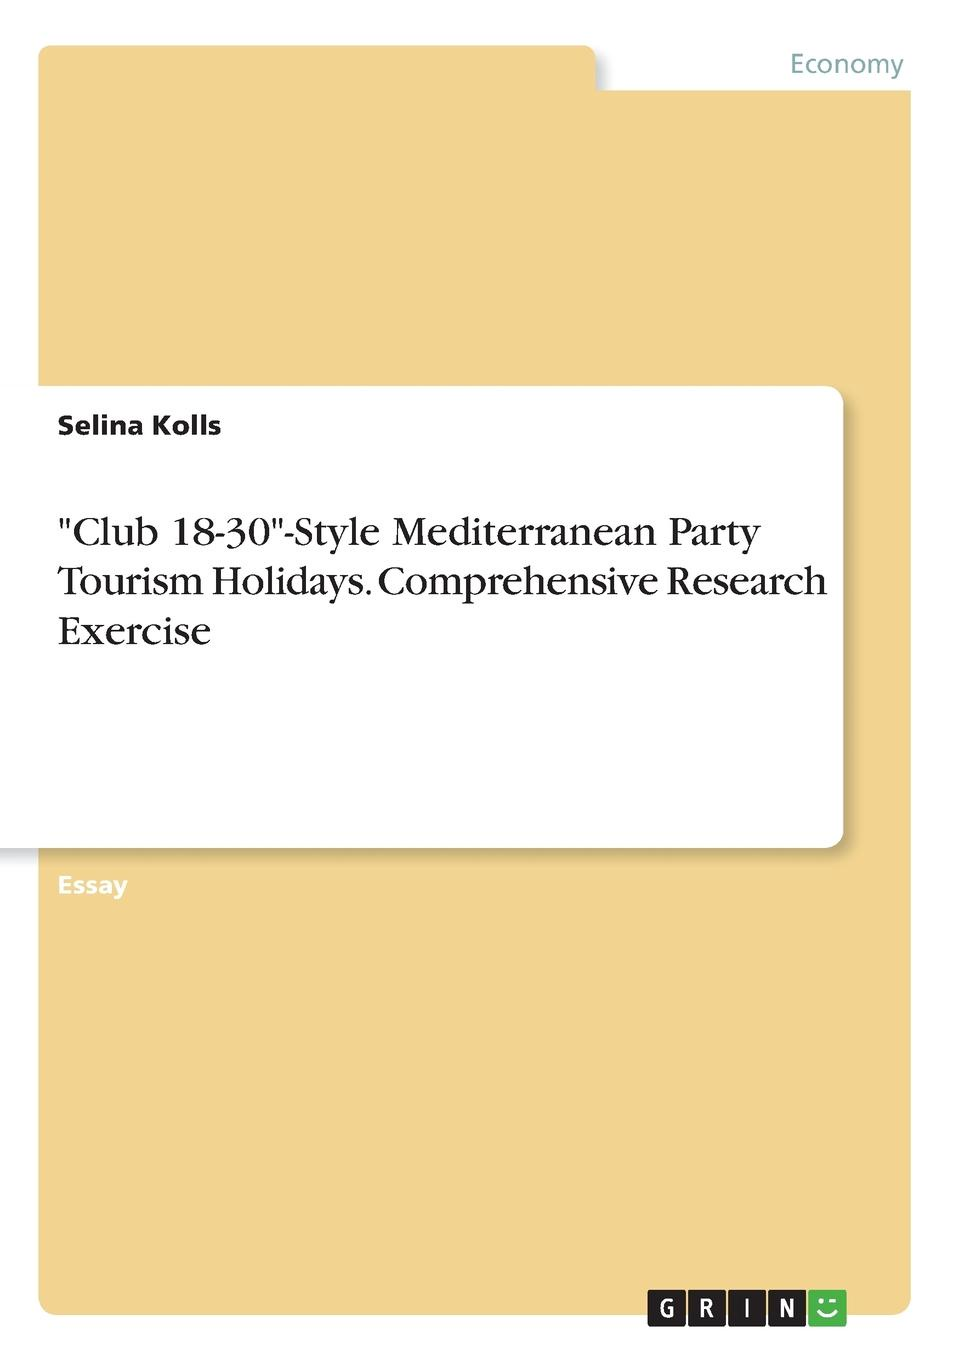 Selina Kolls Club 18-30-Style Mediterranean Party Tourism Holidays. Comprehensive Research Exercise